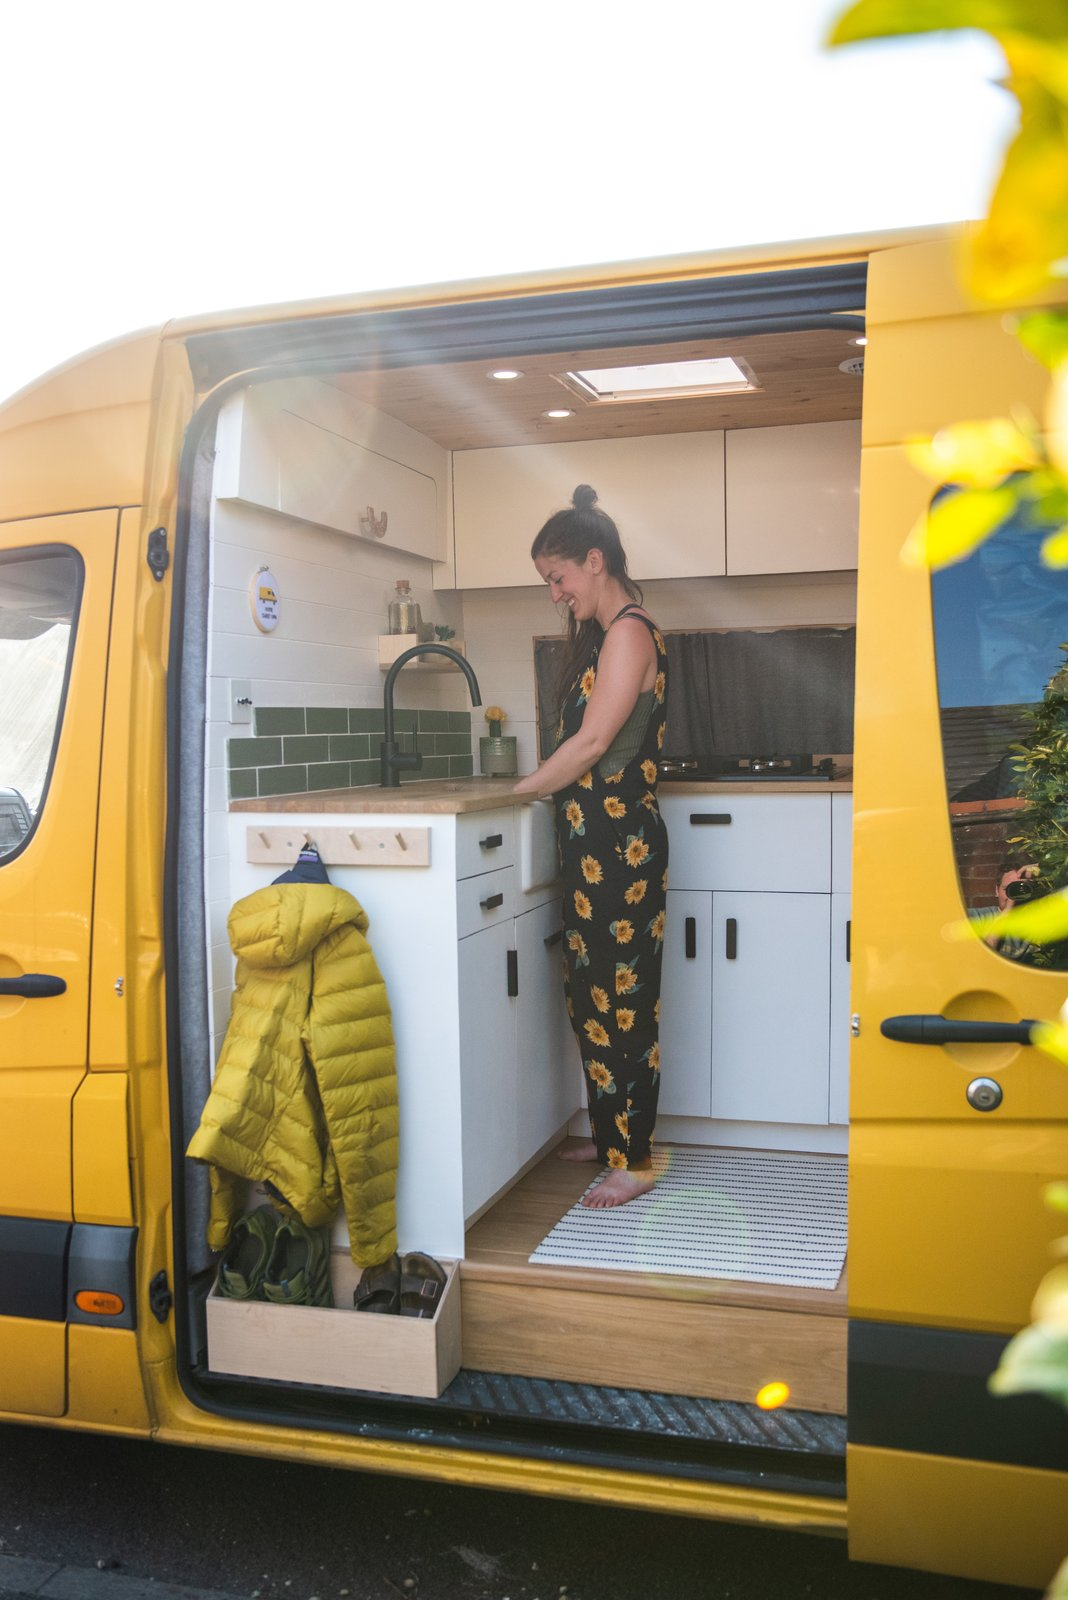 """A designated """"mudroom"""" at the door allows the couple to stow jackets and shoes.  Photo 17 of 22 in Budget Breakdown: A Climbing Couple Turn a Delivery Van Into an Adventure Mobile for $8.5K"""